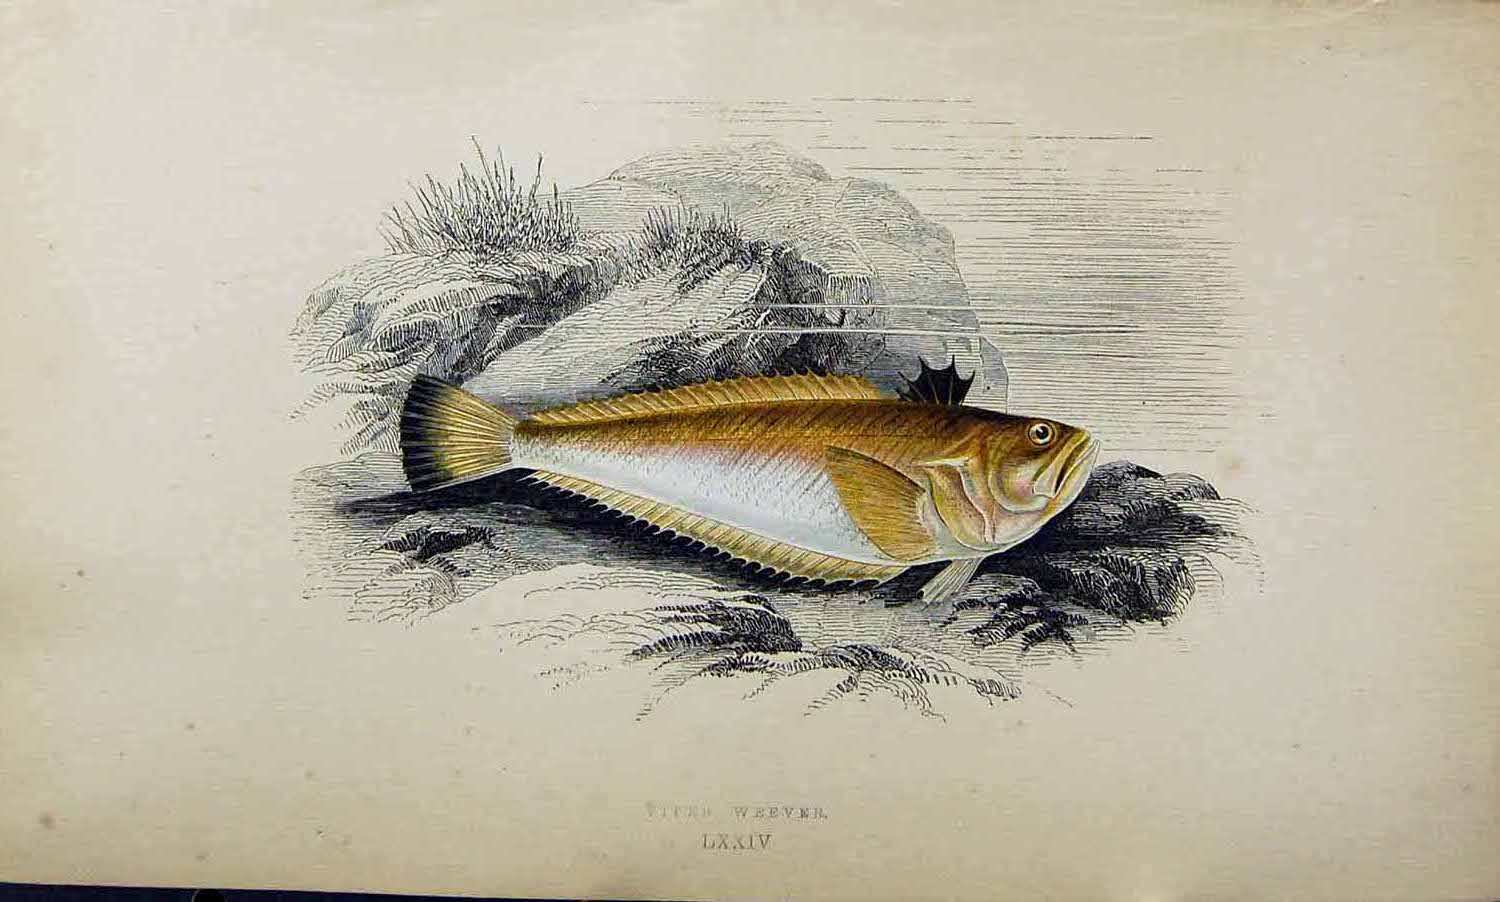 Original-Old-Antique-Print-Viper-Weever-Couch-Colour-British-Fish-1863-19th